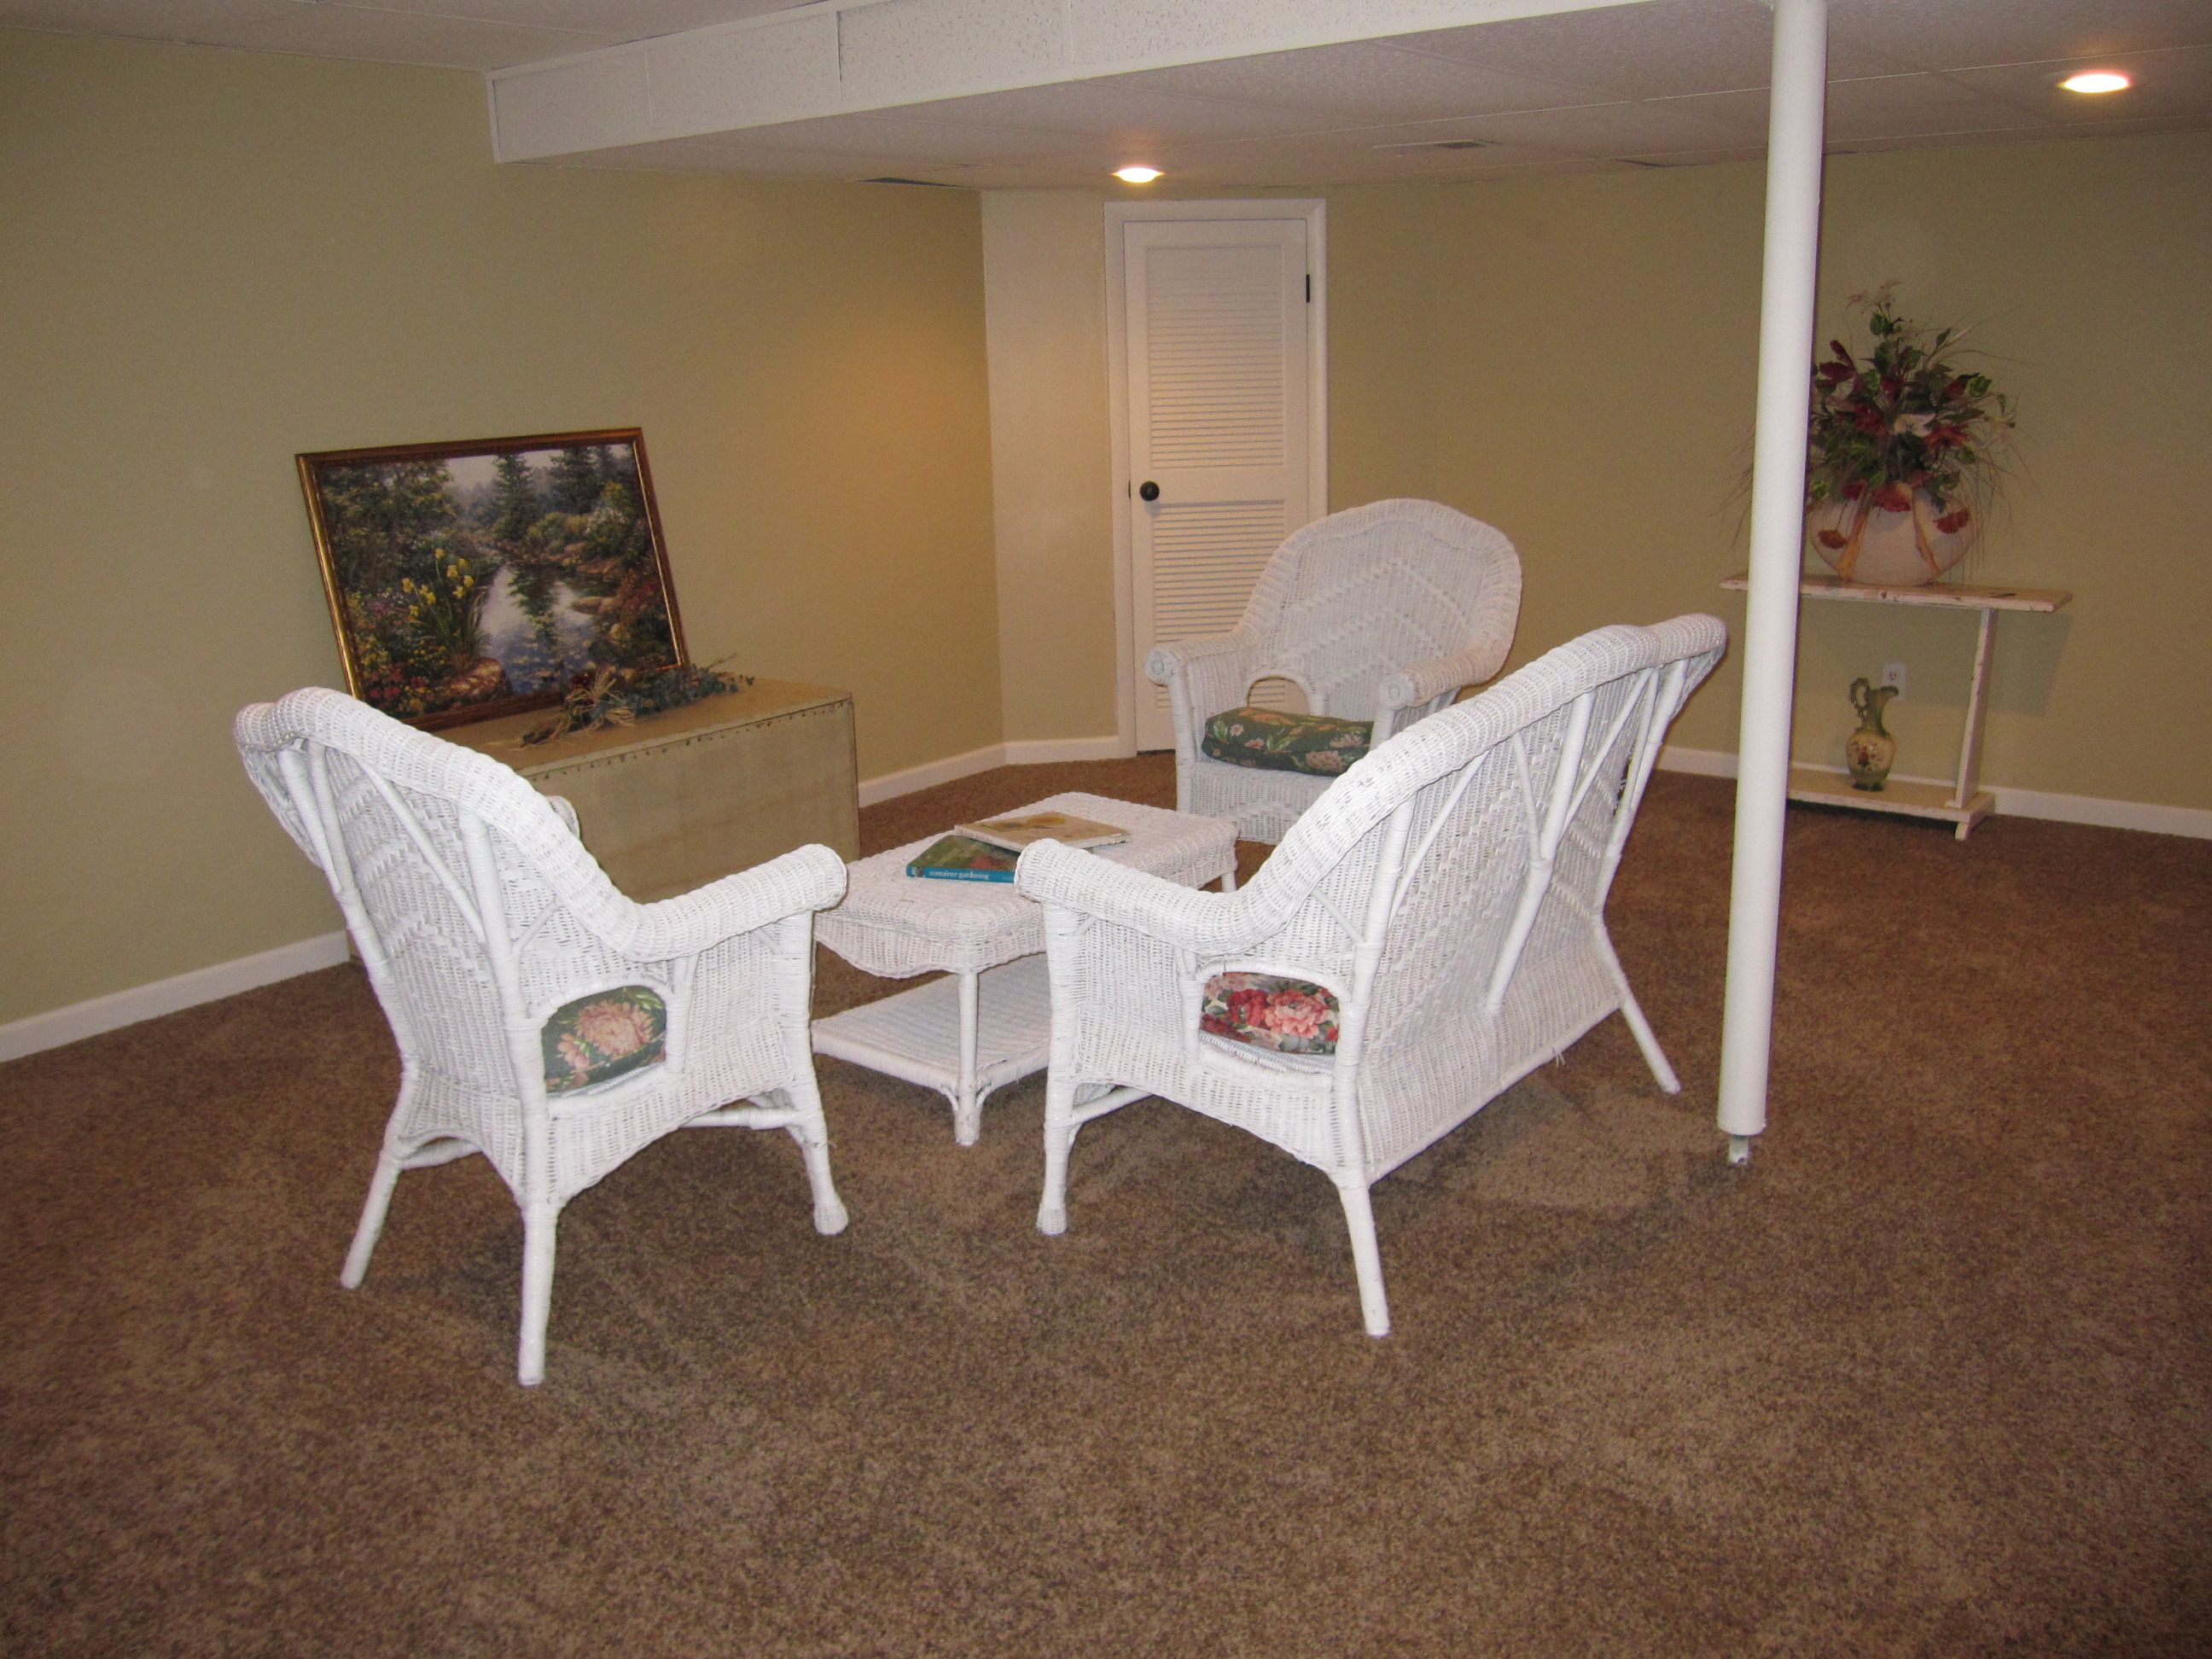 rooms by figueroa furniture entertainment domino plans room table basements pin projects custom play s fine playrooms on wood basement mesas pinterest